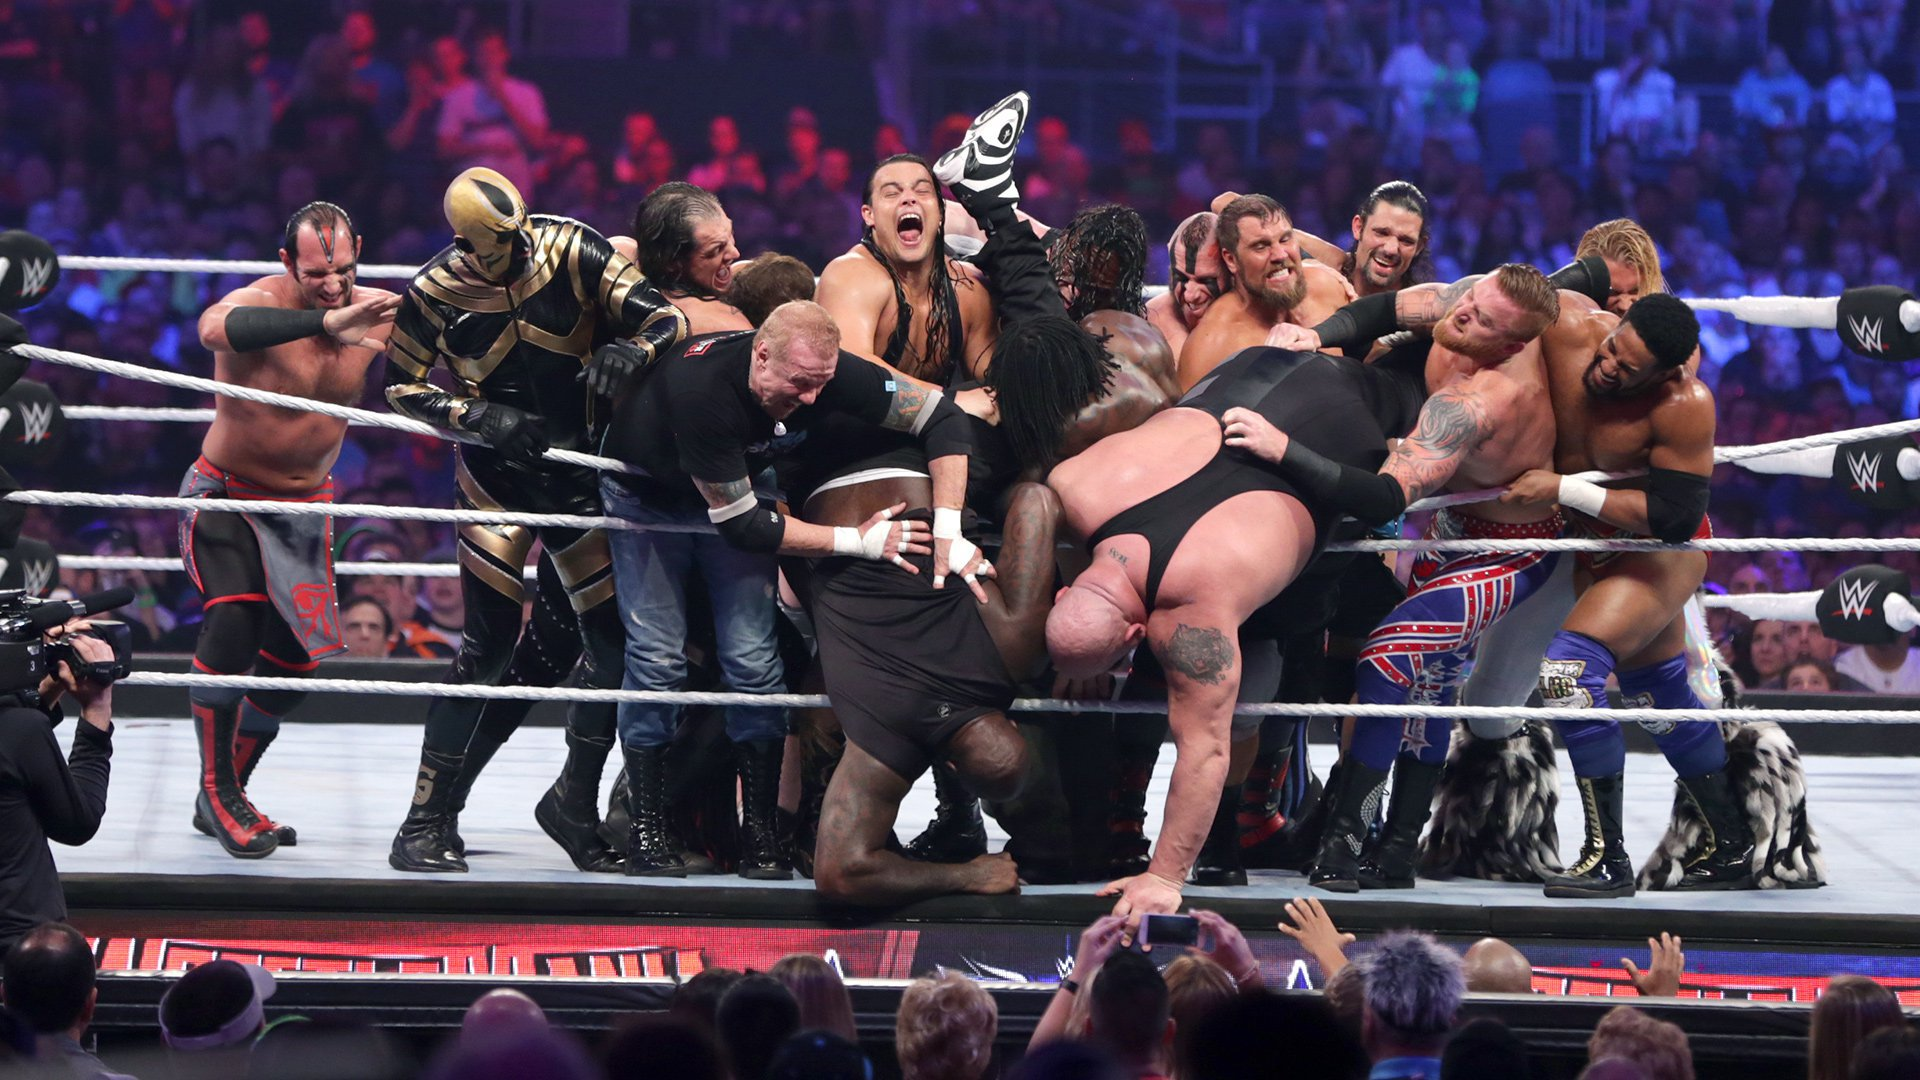 The over-the-top history of WrestleMania Battle Royals